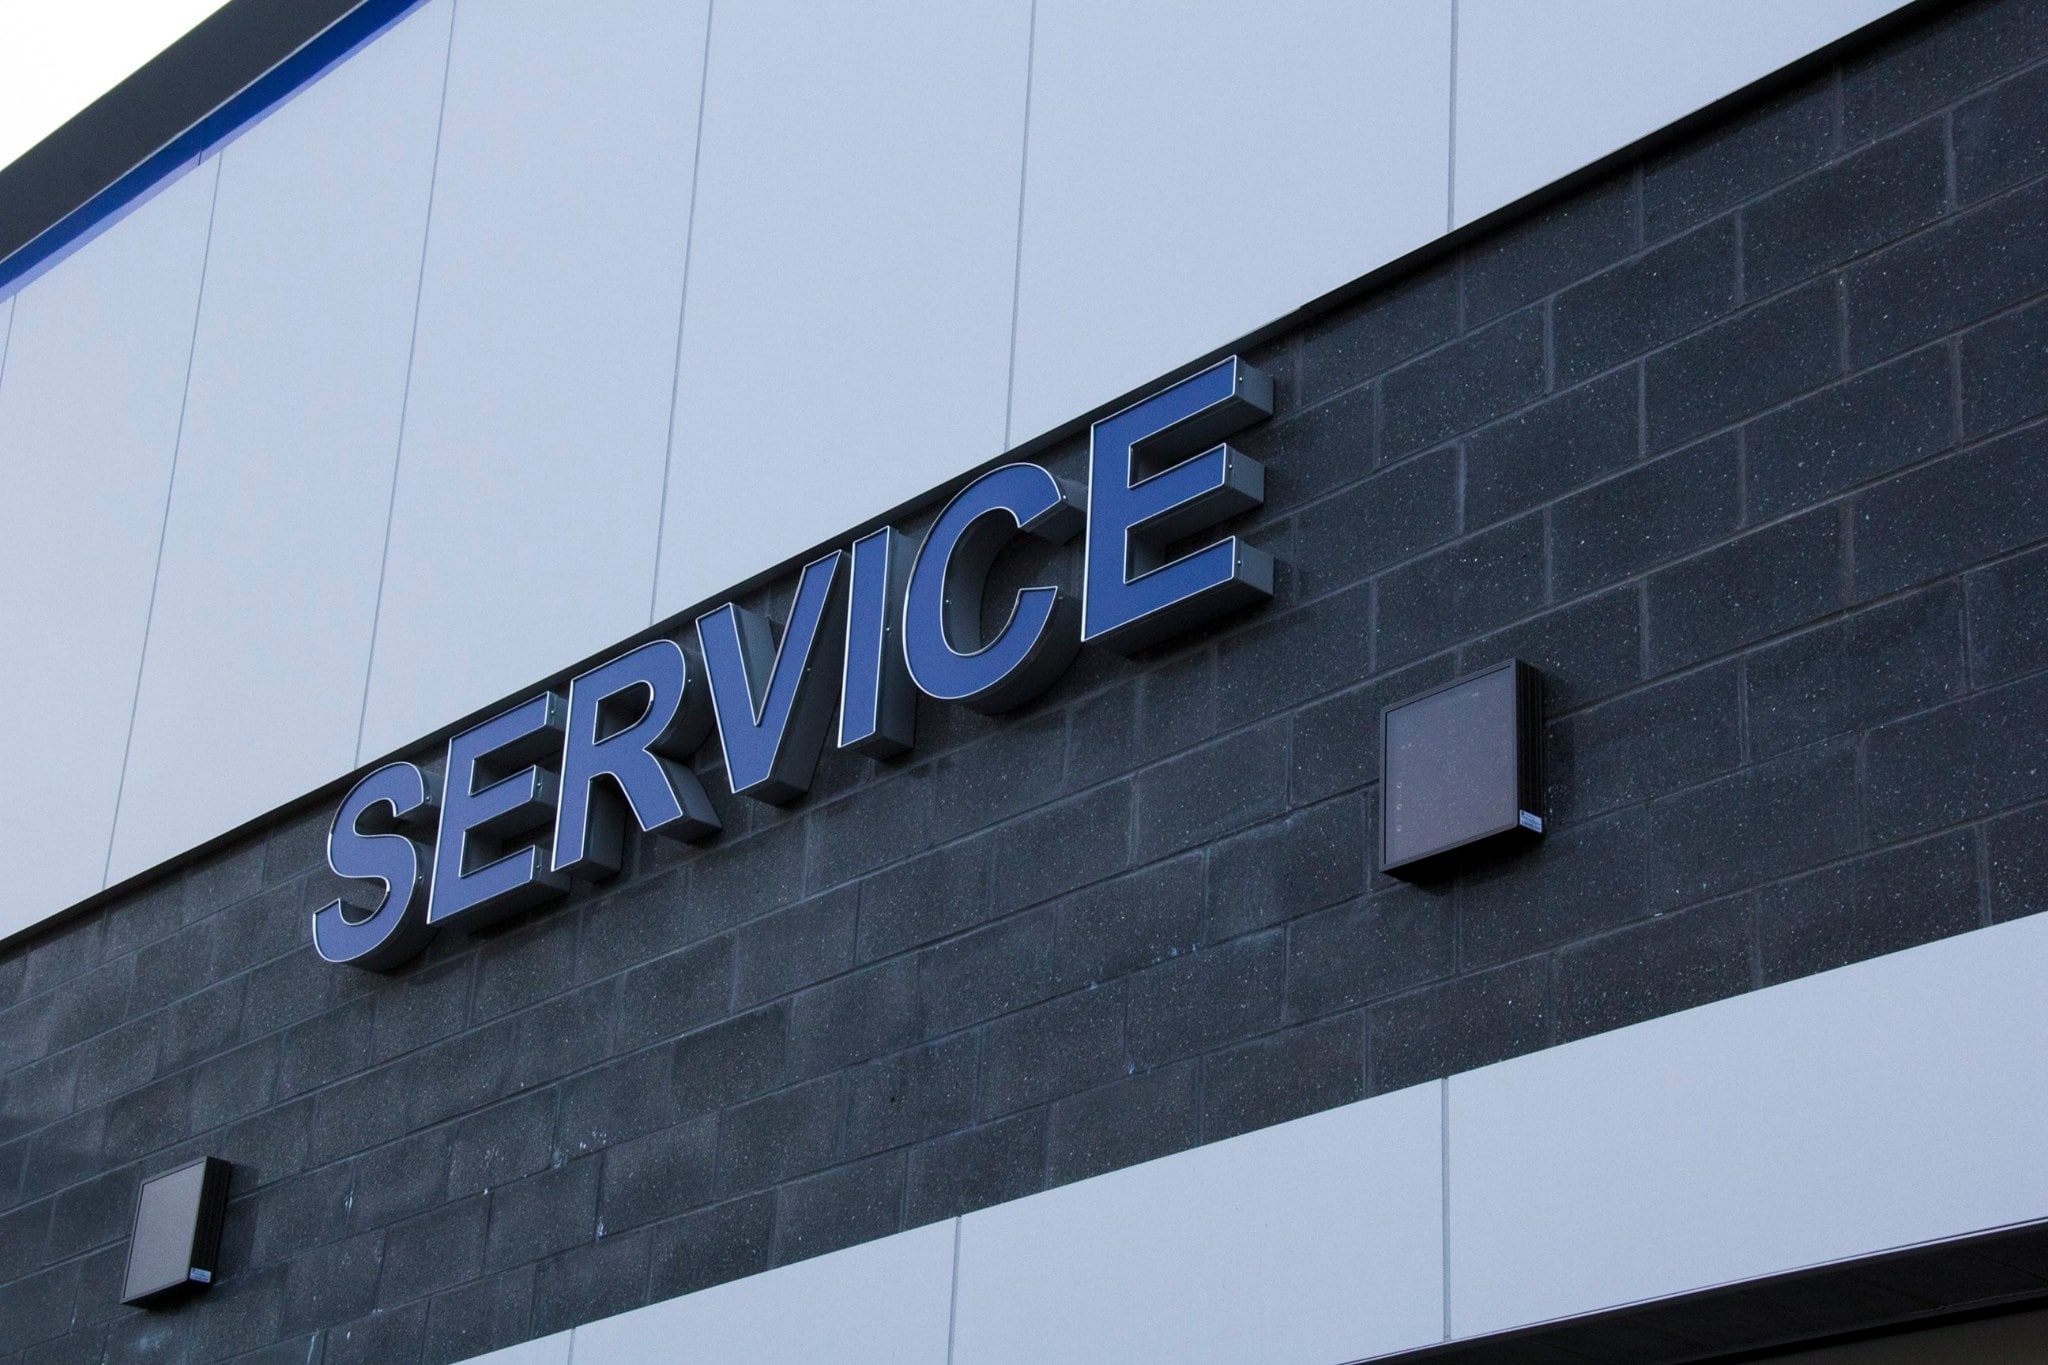 Auto Service Center Sign at Balise Subaru